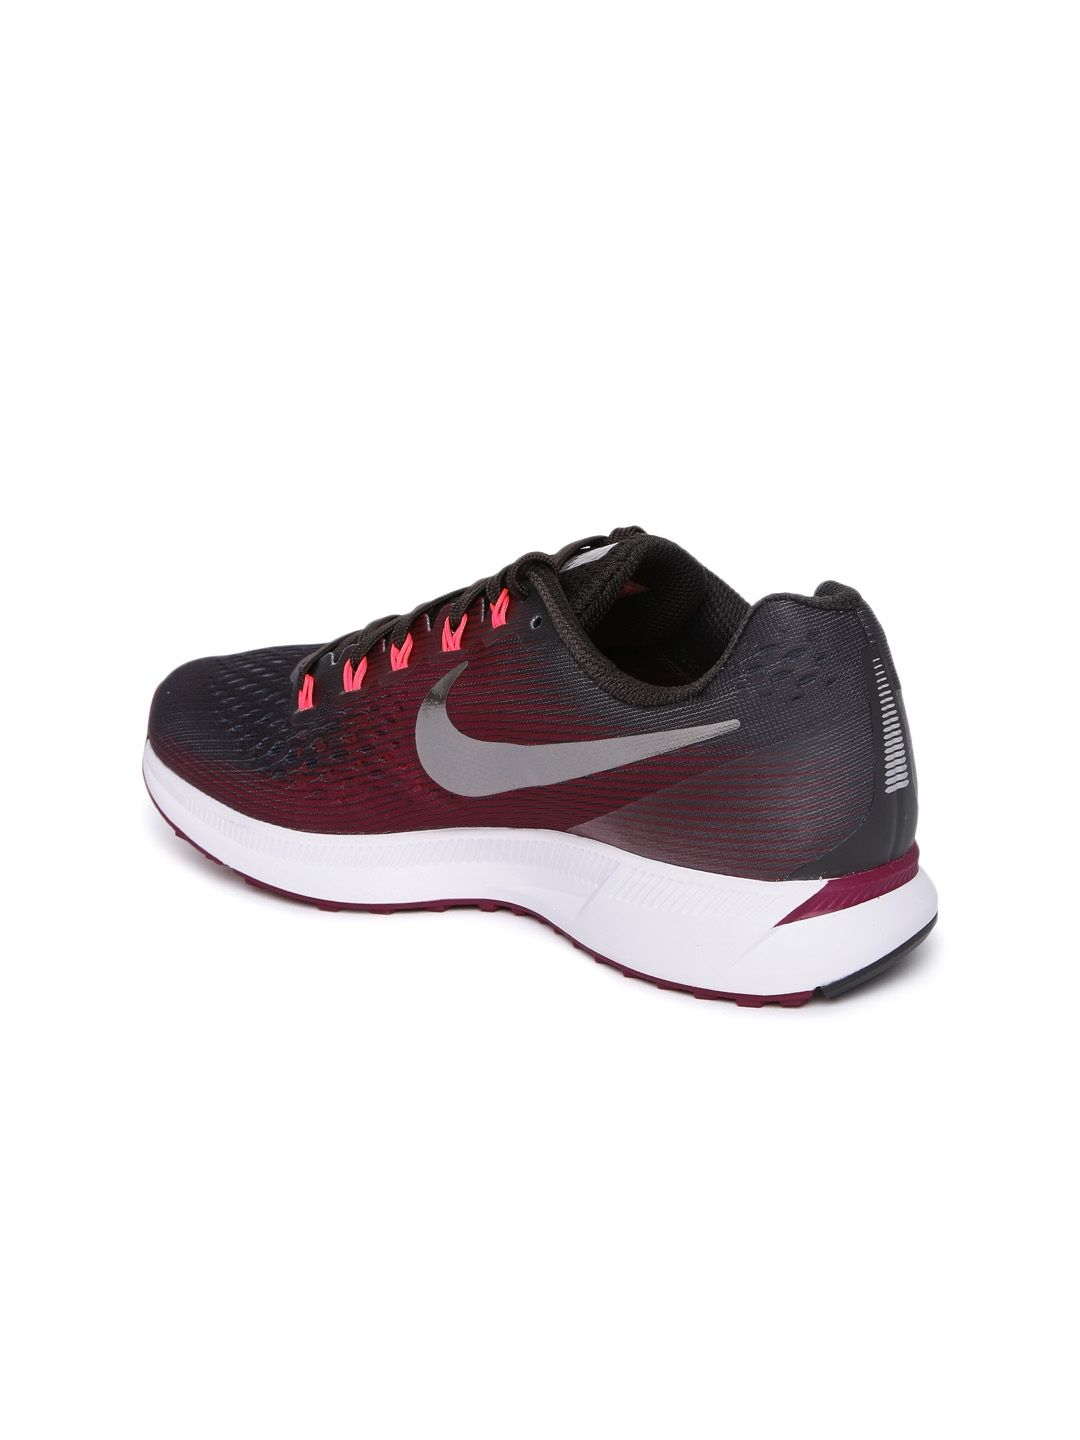 a6dfa16b96d24 ... aliexpress nike women burgundy w air zoom pegasus 34 gem running shoes  35bd8 32336